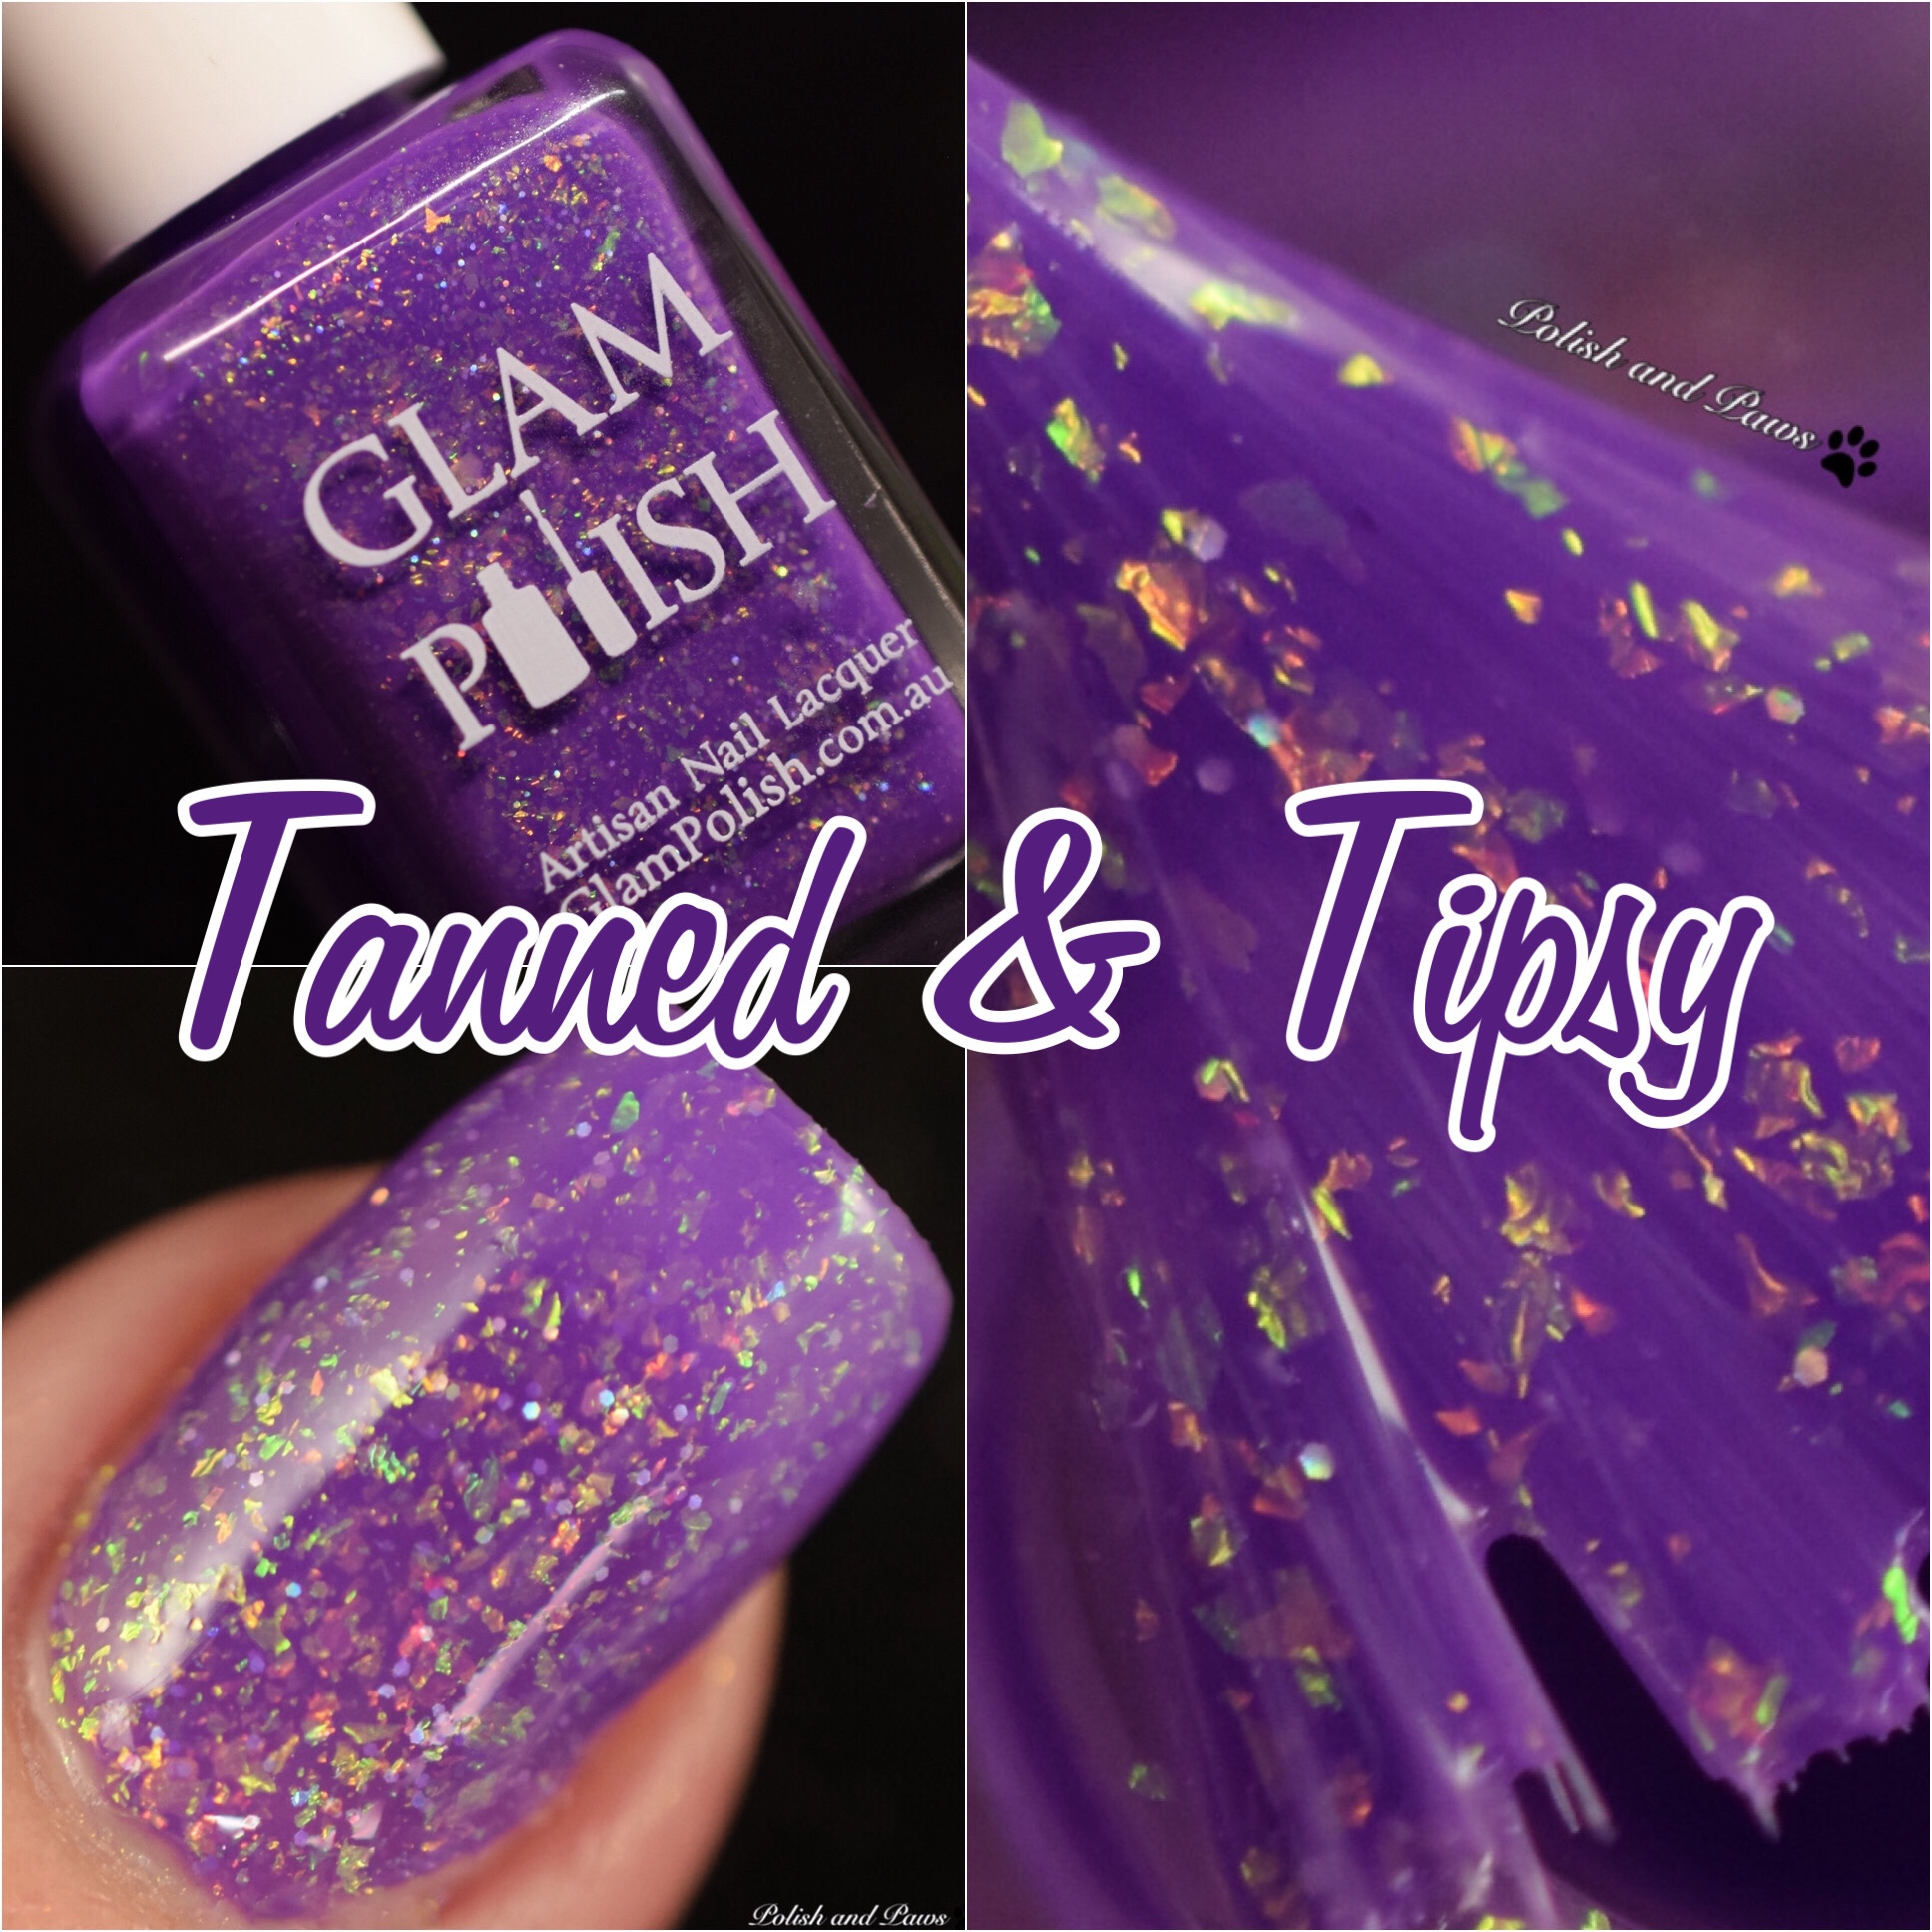 Glam Polish Tanned & Tipsy